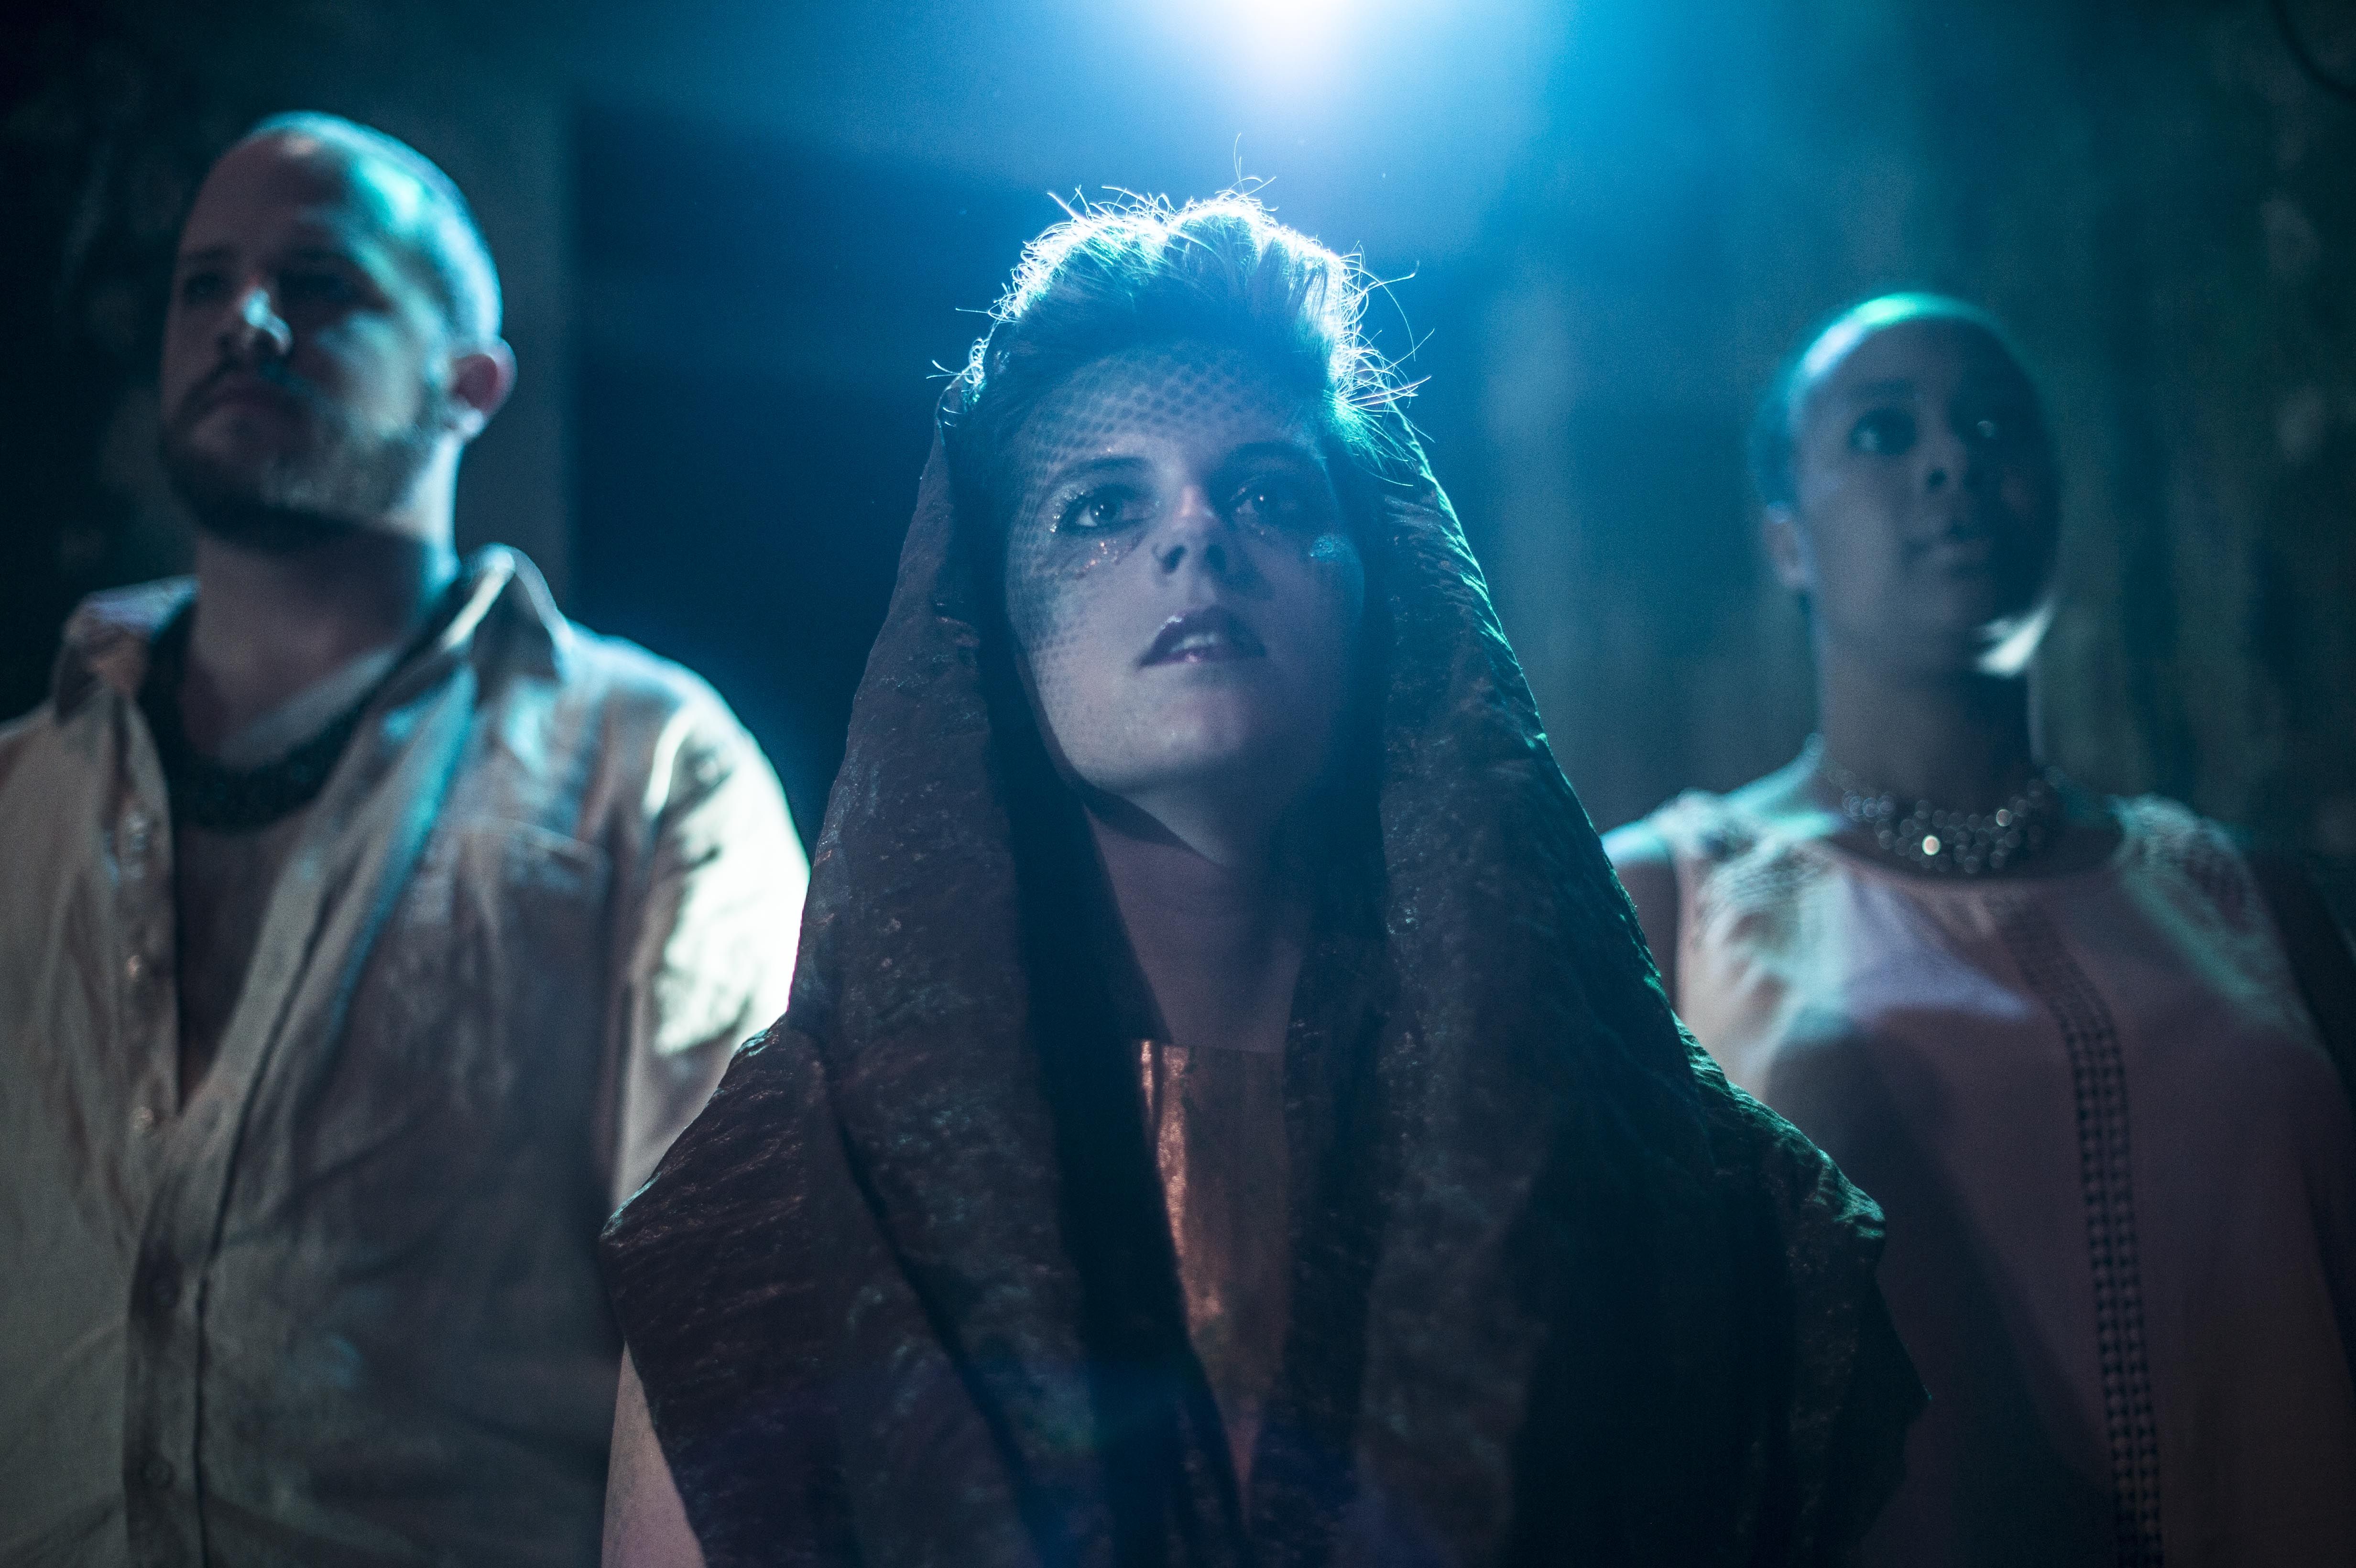 These Are the Men (March/April 2015), Laura Leffler-McCabe as Jocasta, Michael Ooms as Creon, surrounded by the ensemble. Photo credit: Carl Atiya Swanson